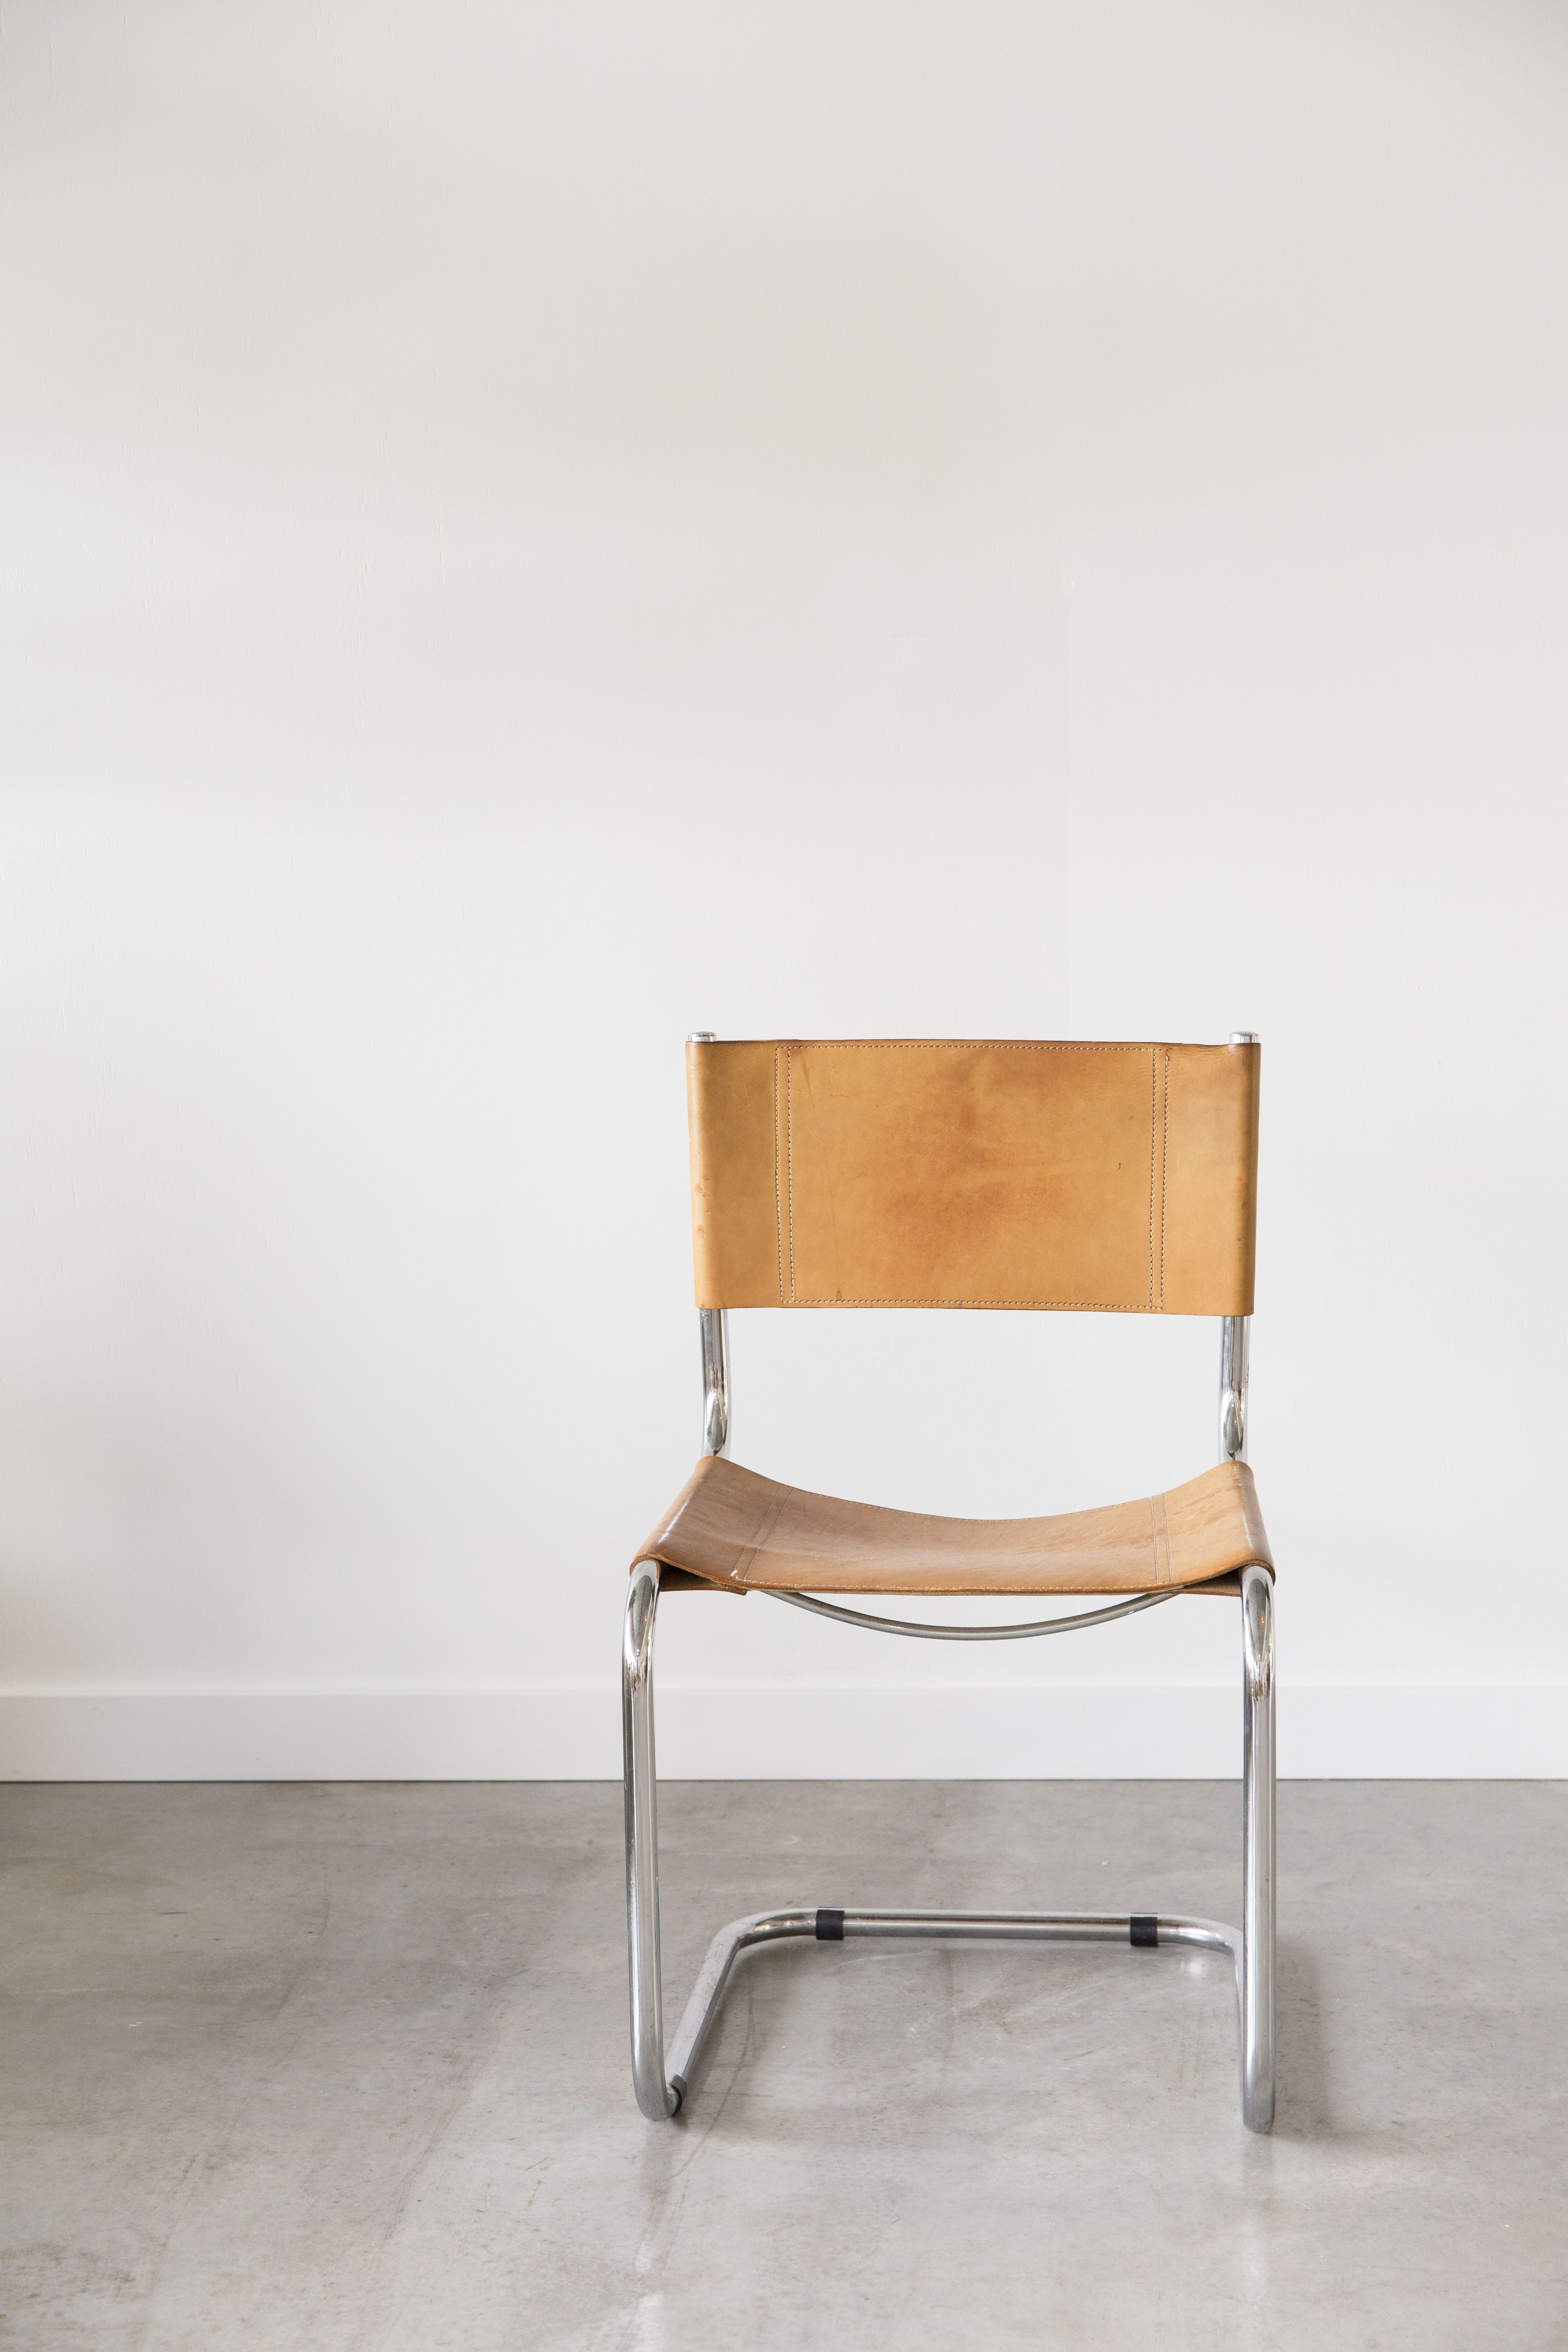 Fasem Chair Tan Leather with Silver Details Chair